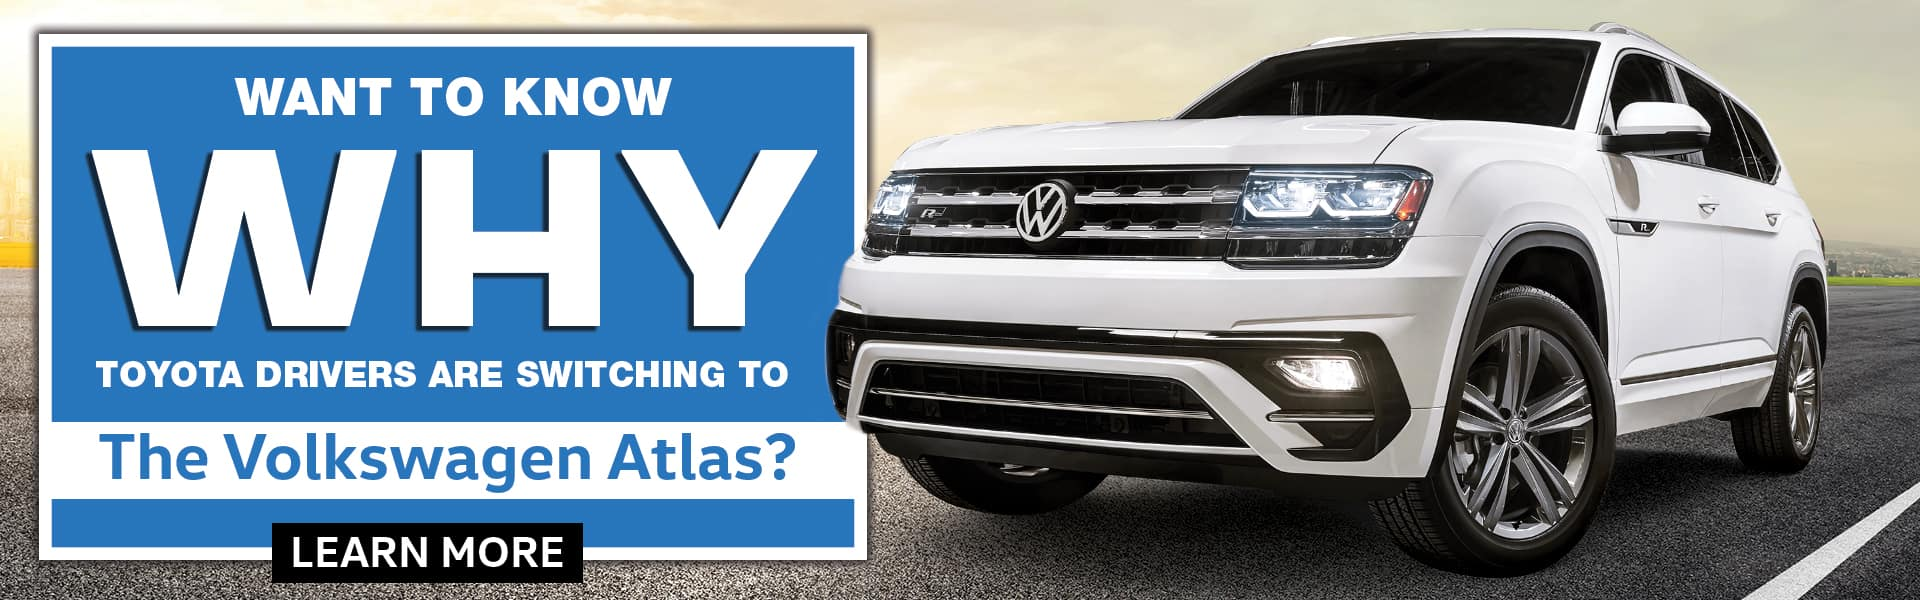 Want To Know Why Toyota Drivers Are Switching To The Volkswagen Atlas?